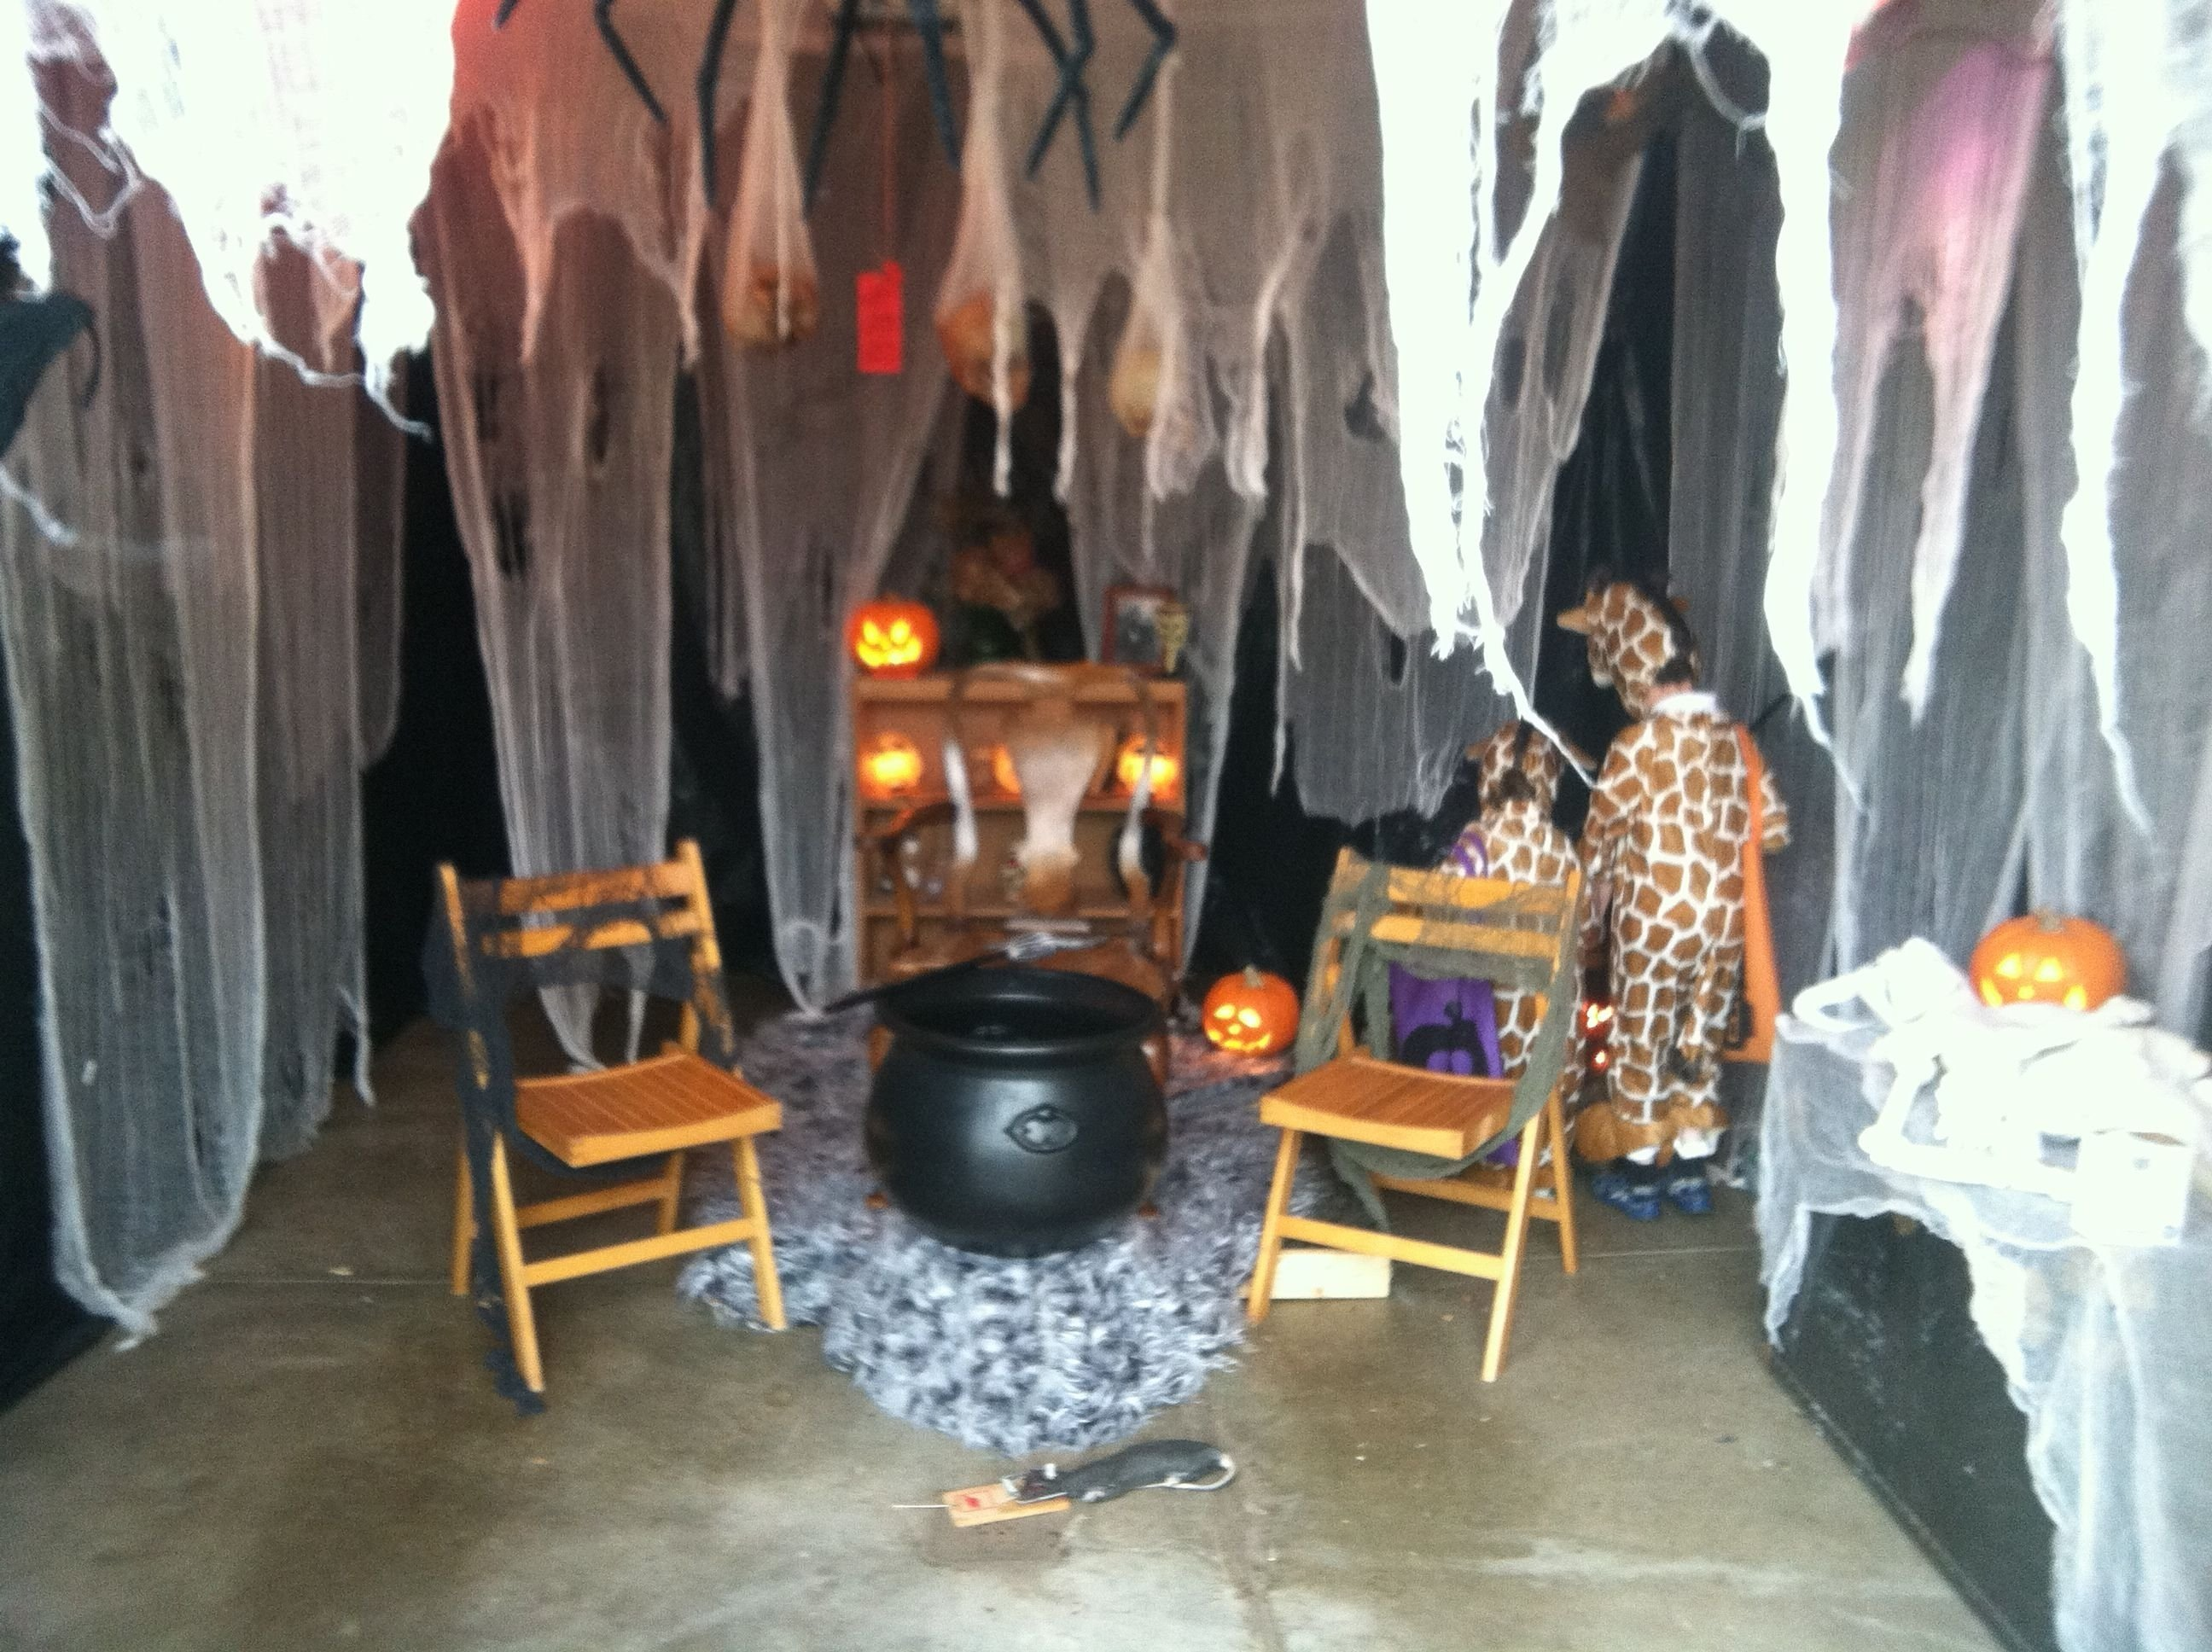 10 Stunning Halloween Haunted House Room Ideas check out some of these fun spooky setups to inspire you to make 2020